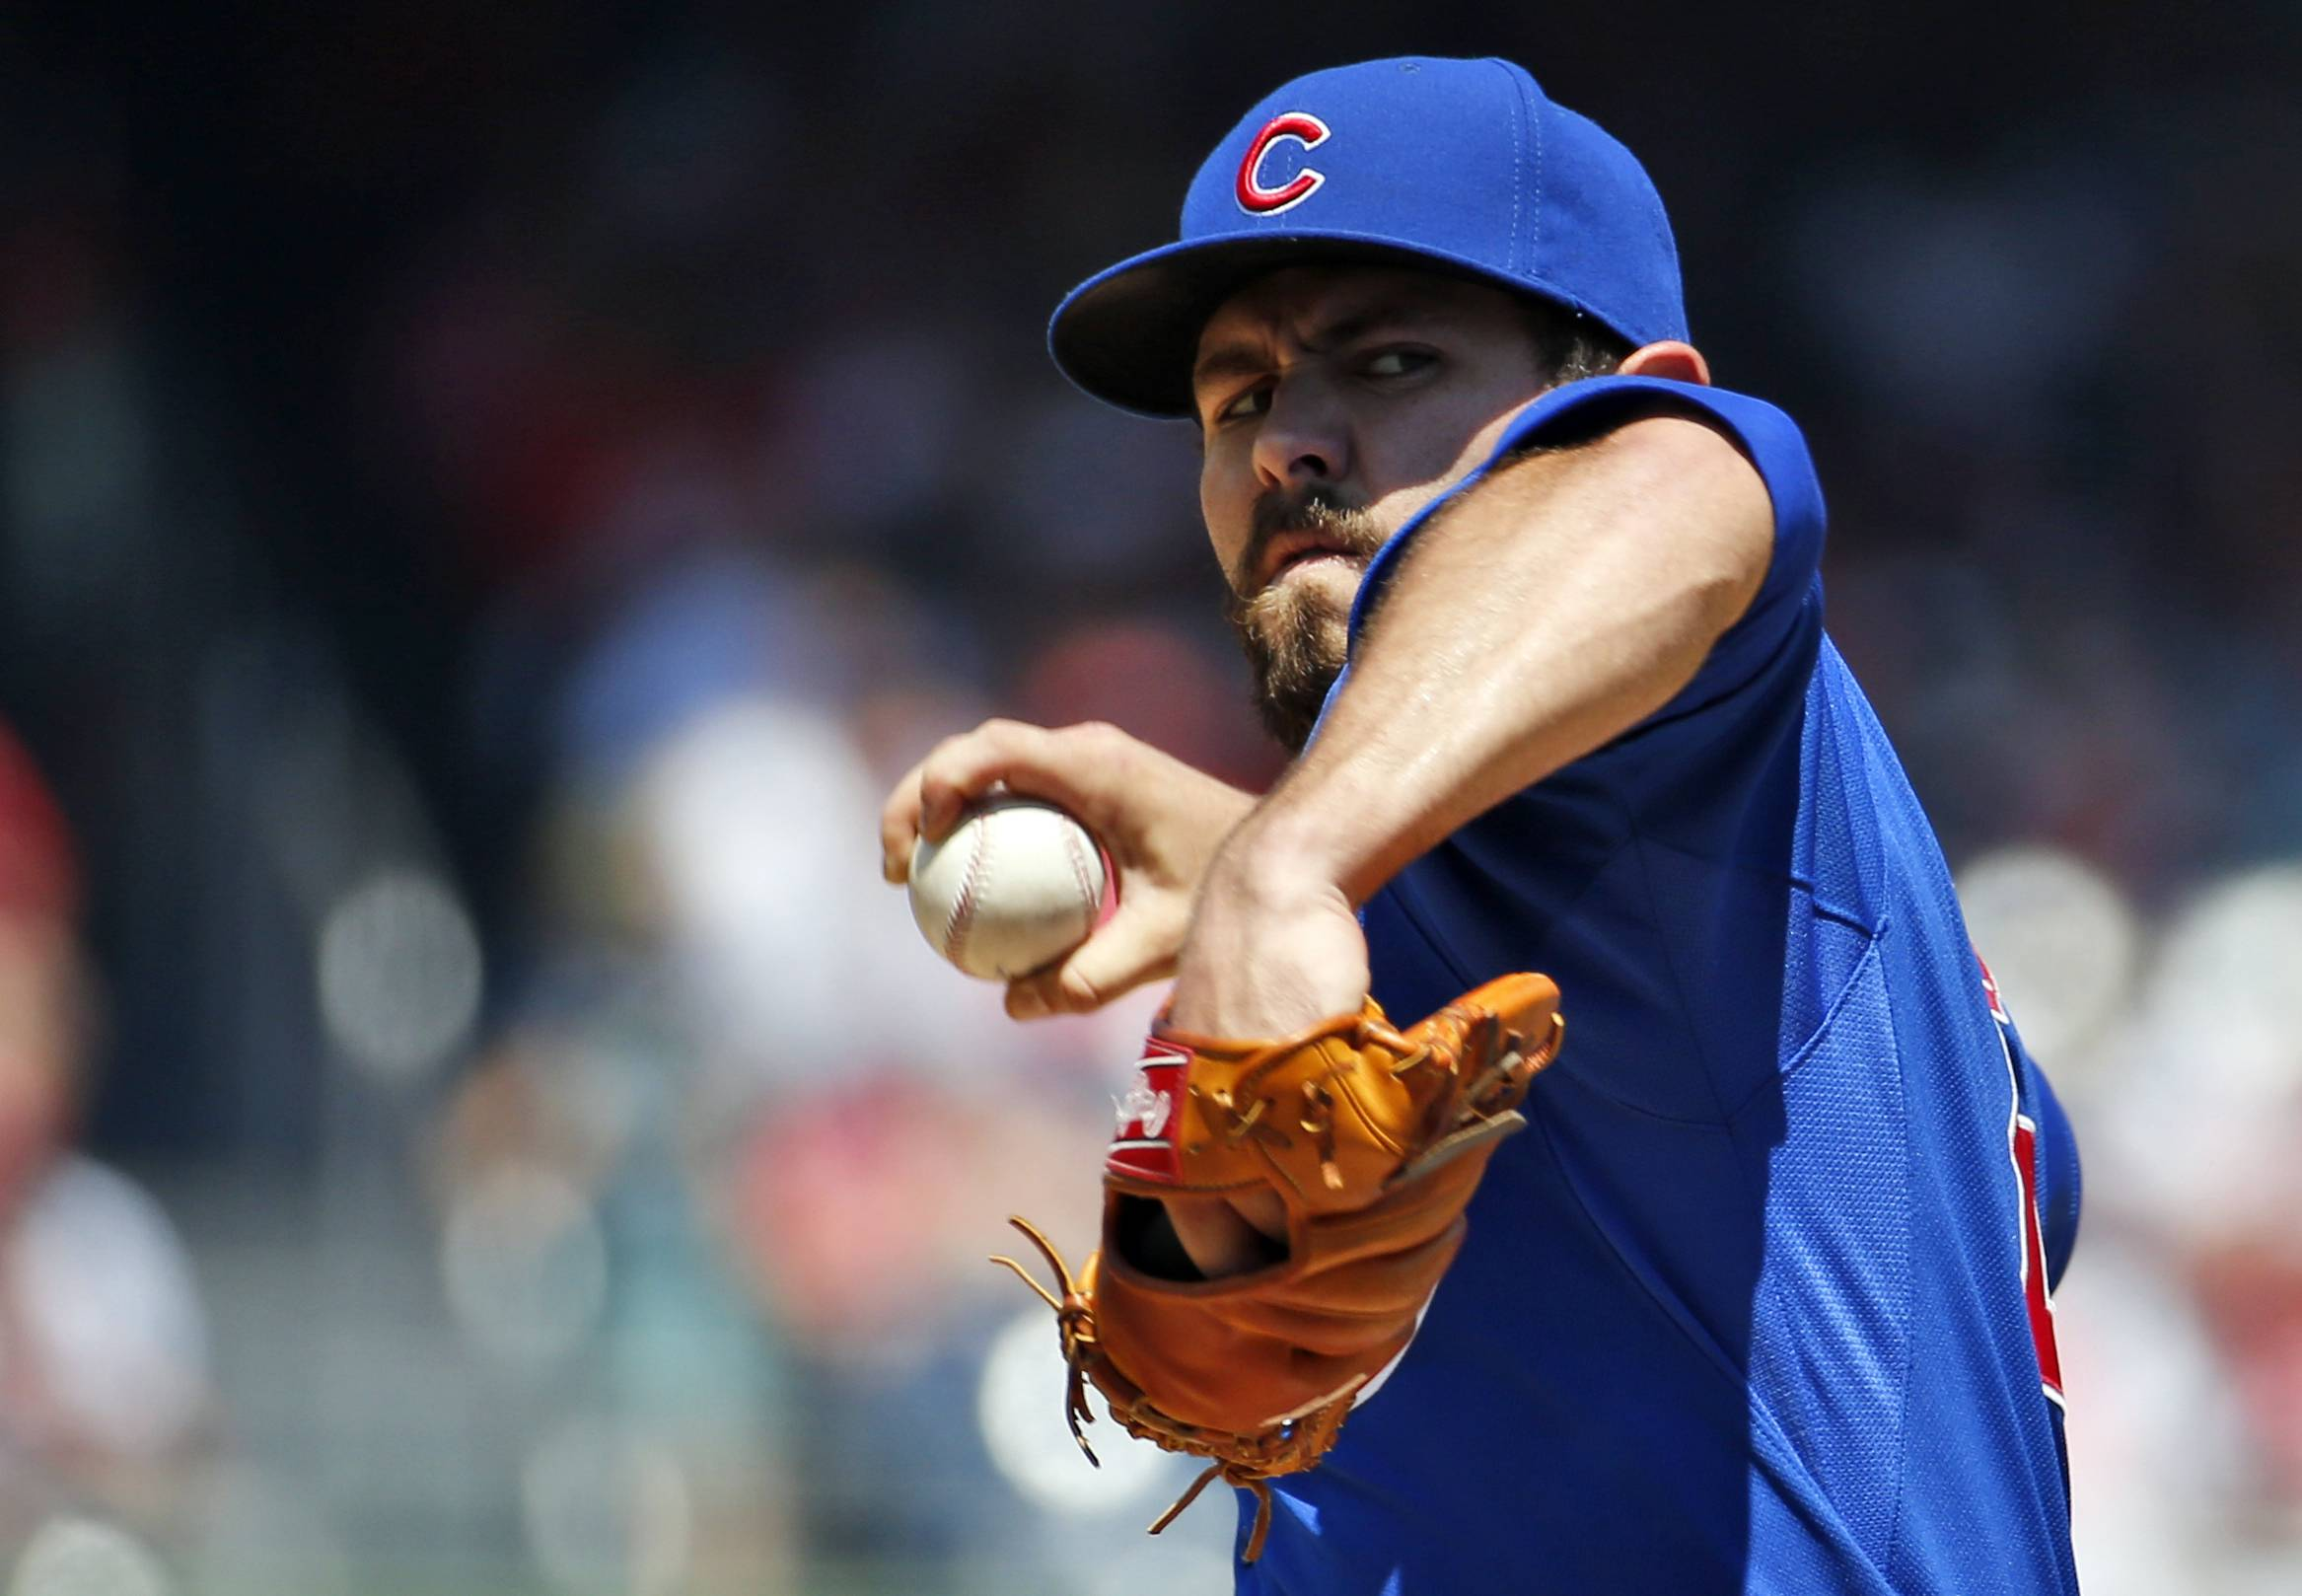 Jake Arrieta's now the ace of the starting rotation, and there are two spots for the Cubs to give some young pitchers a look.